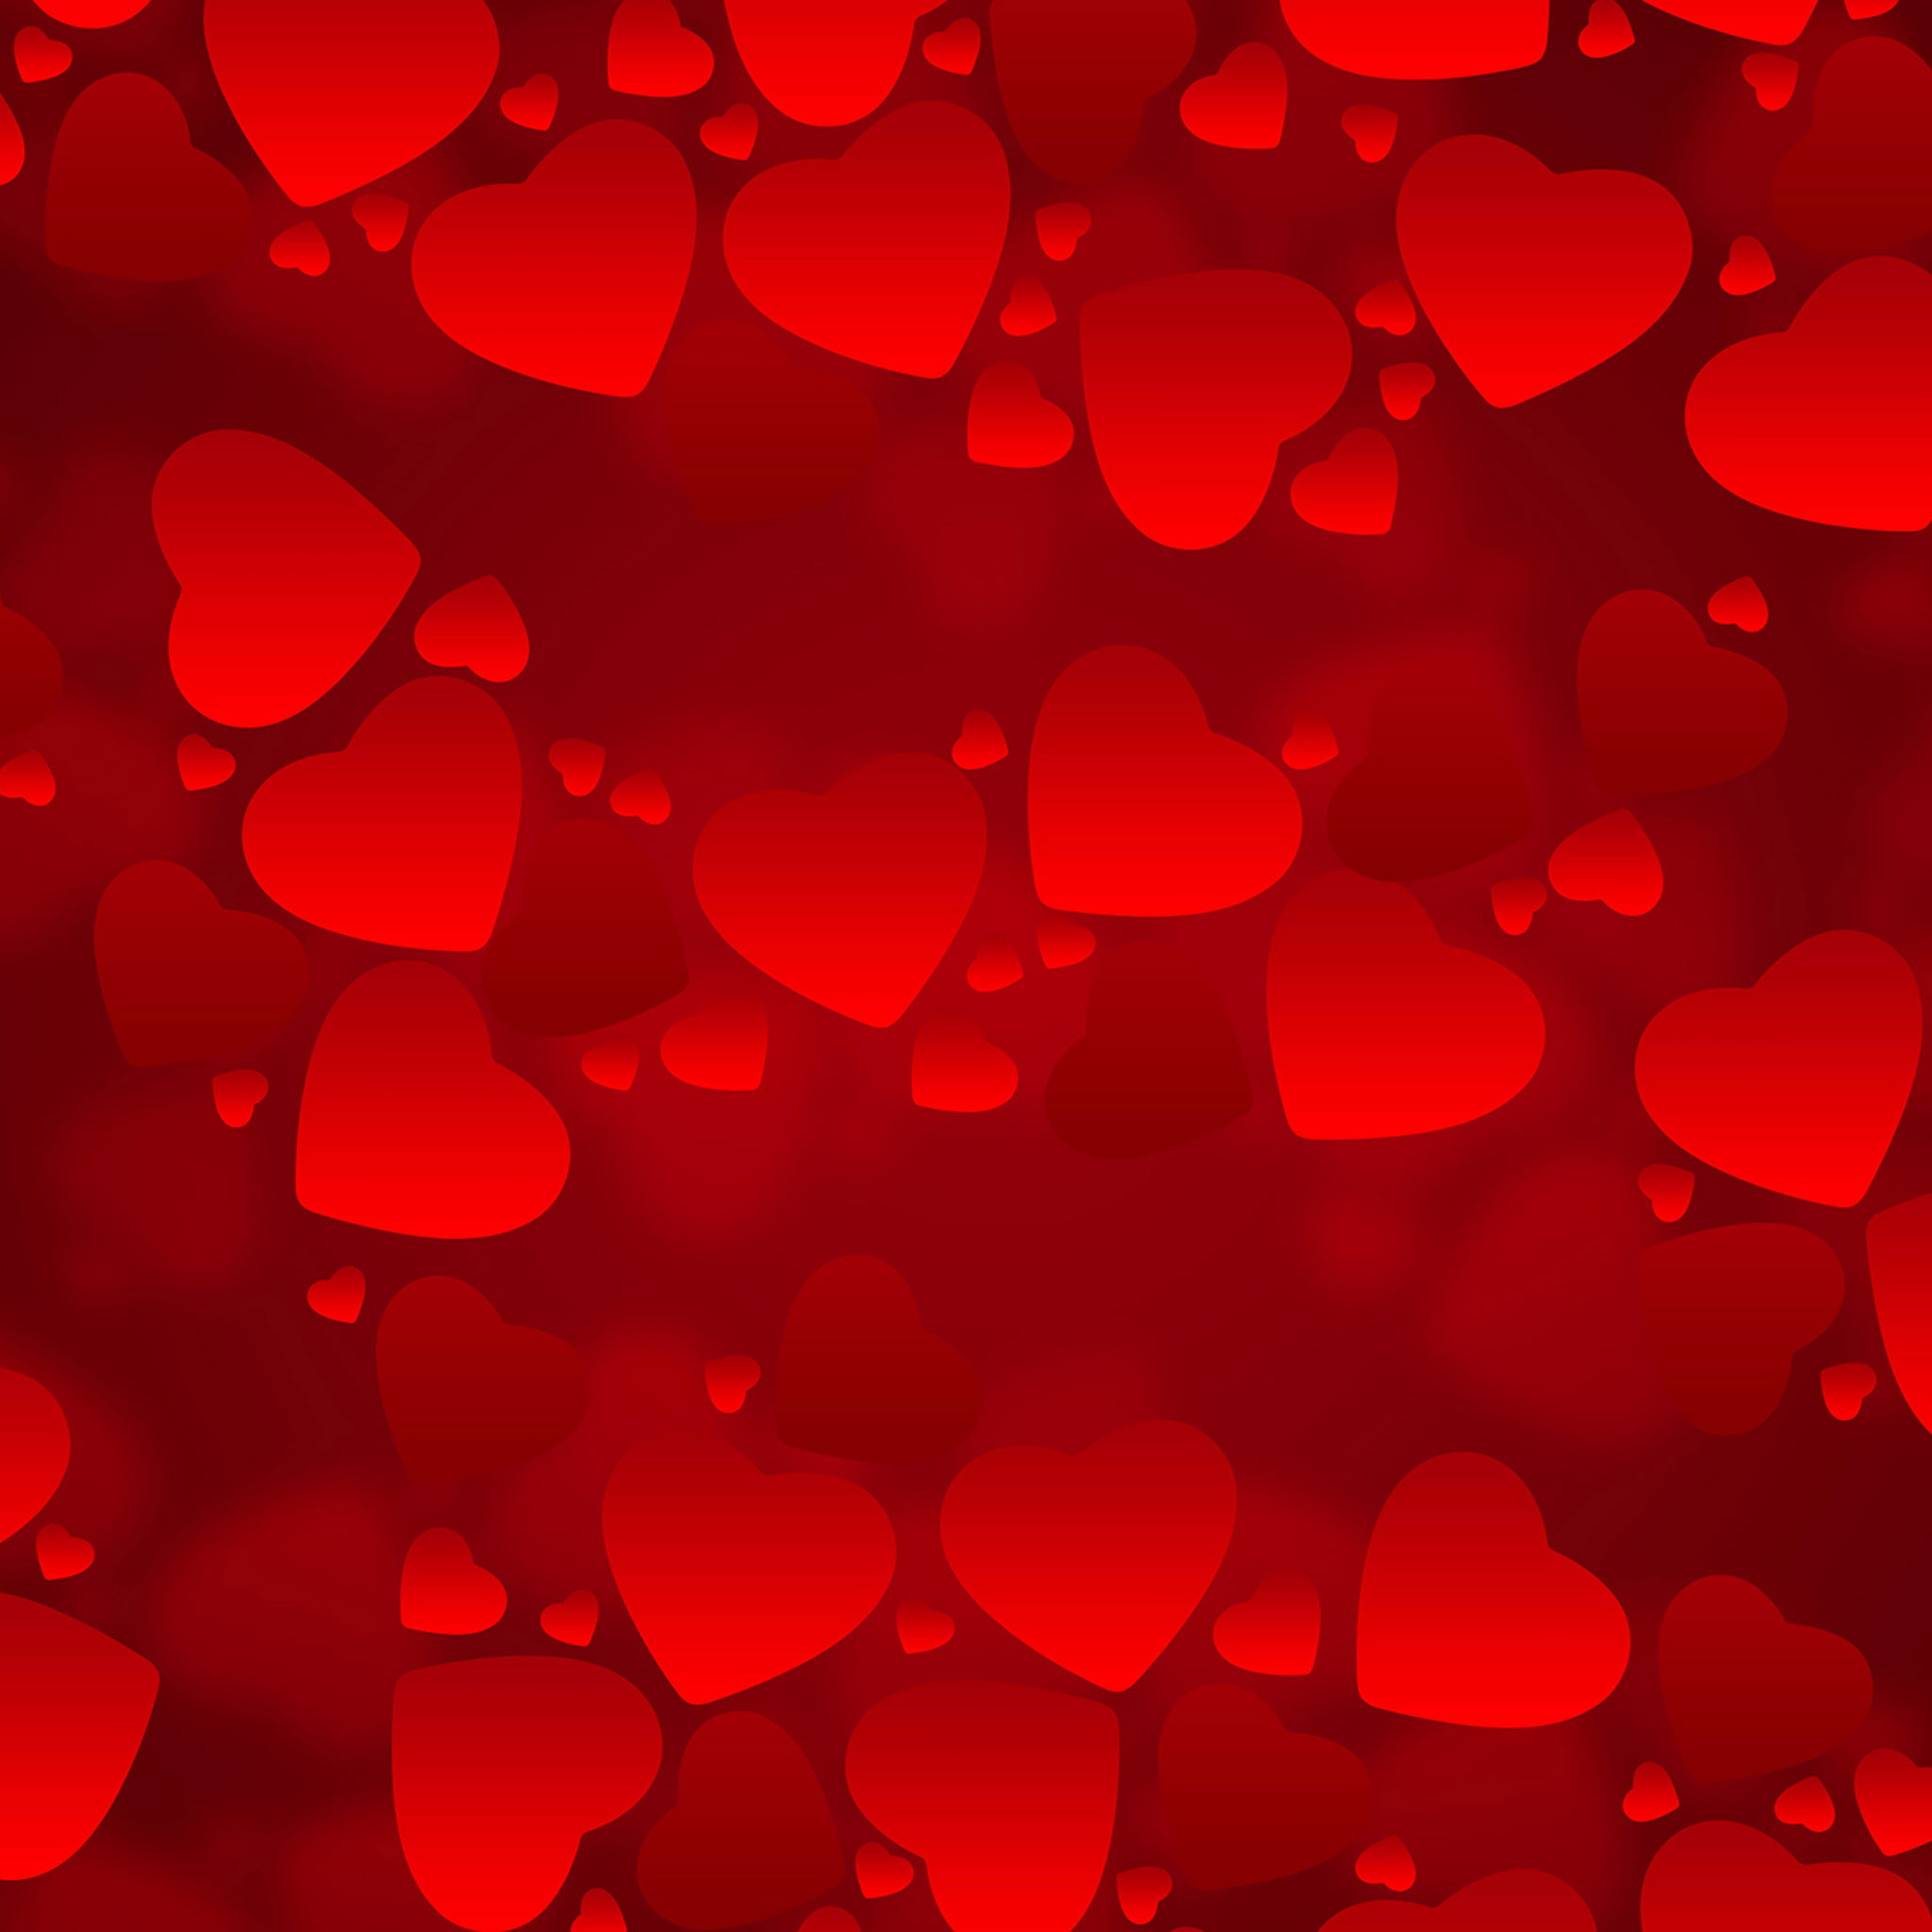 21 valentine's day ipad wallpapers